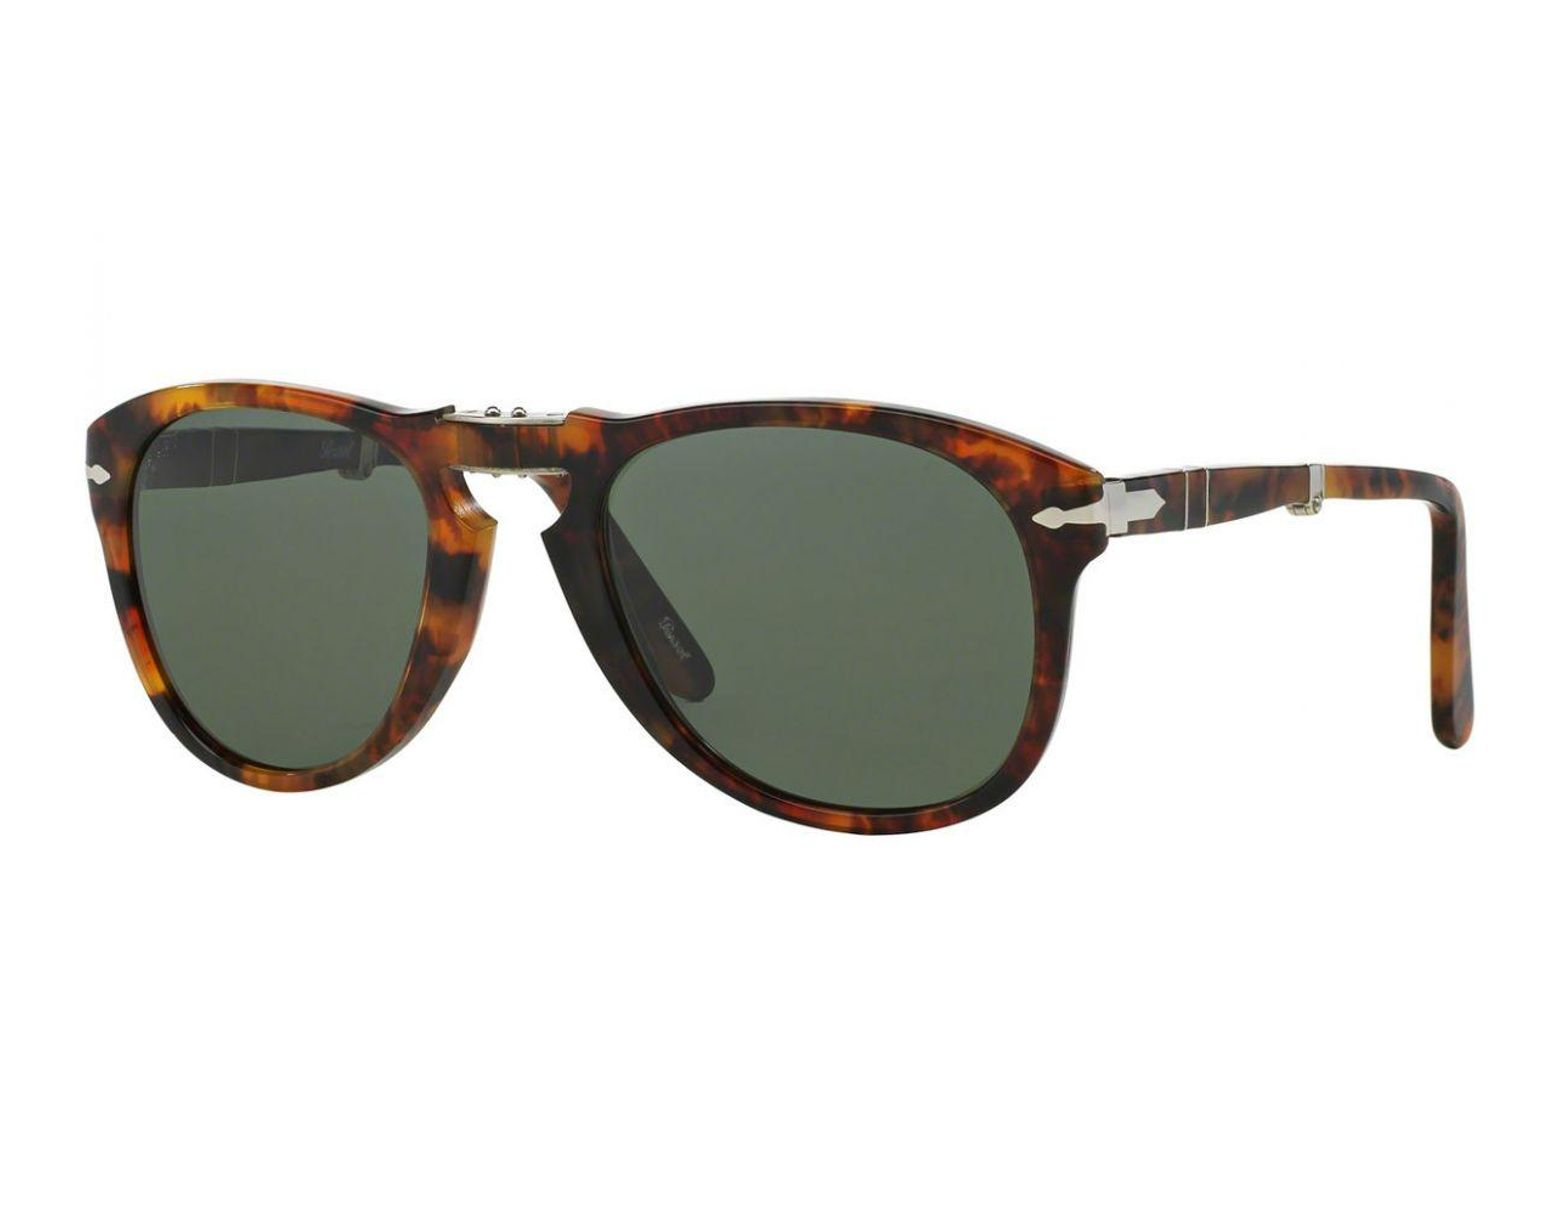 4f8a7d4cfc6f Persol Icons Po0714 108/58 Caffe With Crystal Green Lenses Sunglasses in  Green for Men - Lyst